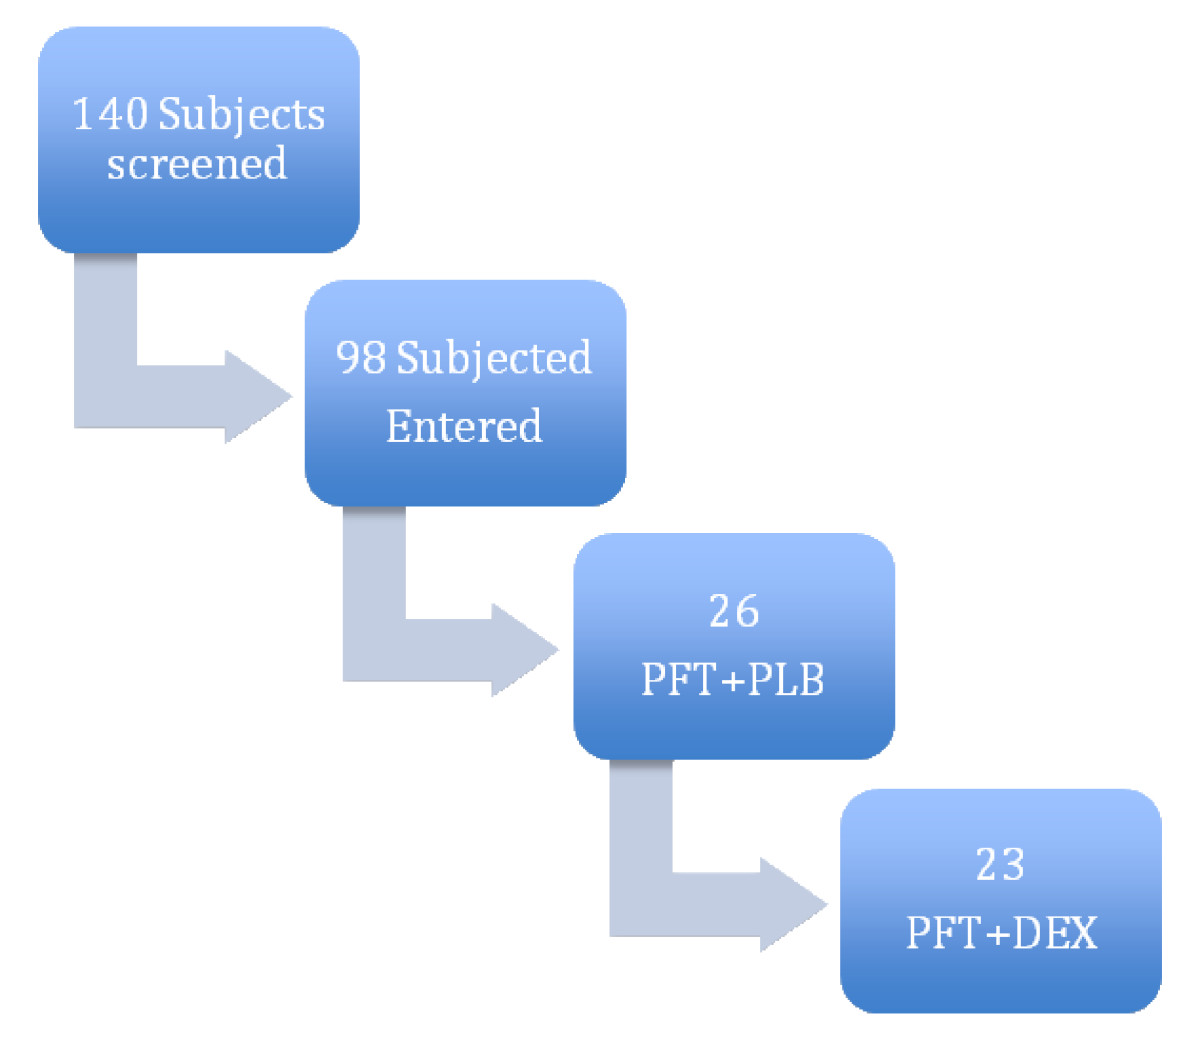 https://static-content.springer.com/image/art%3A10.1186%2F1471-244X-12-30/MediaObjects/12888_2011_Article_1001_Fig1_HTML.jpg